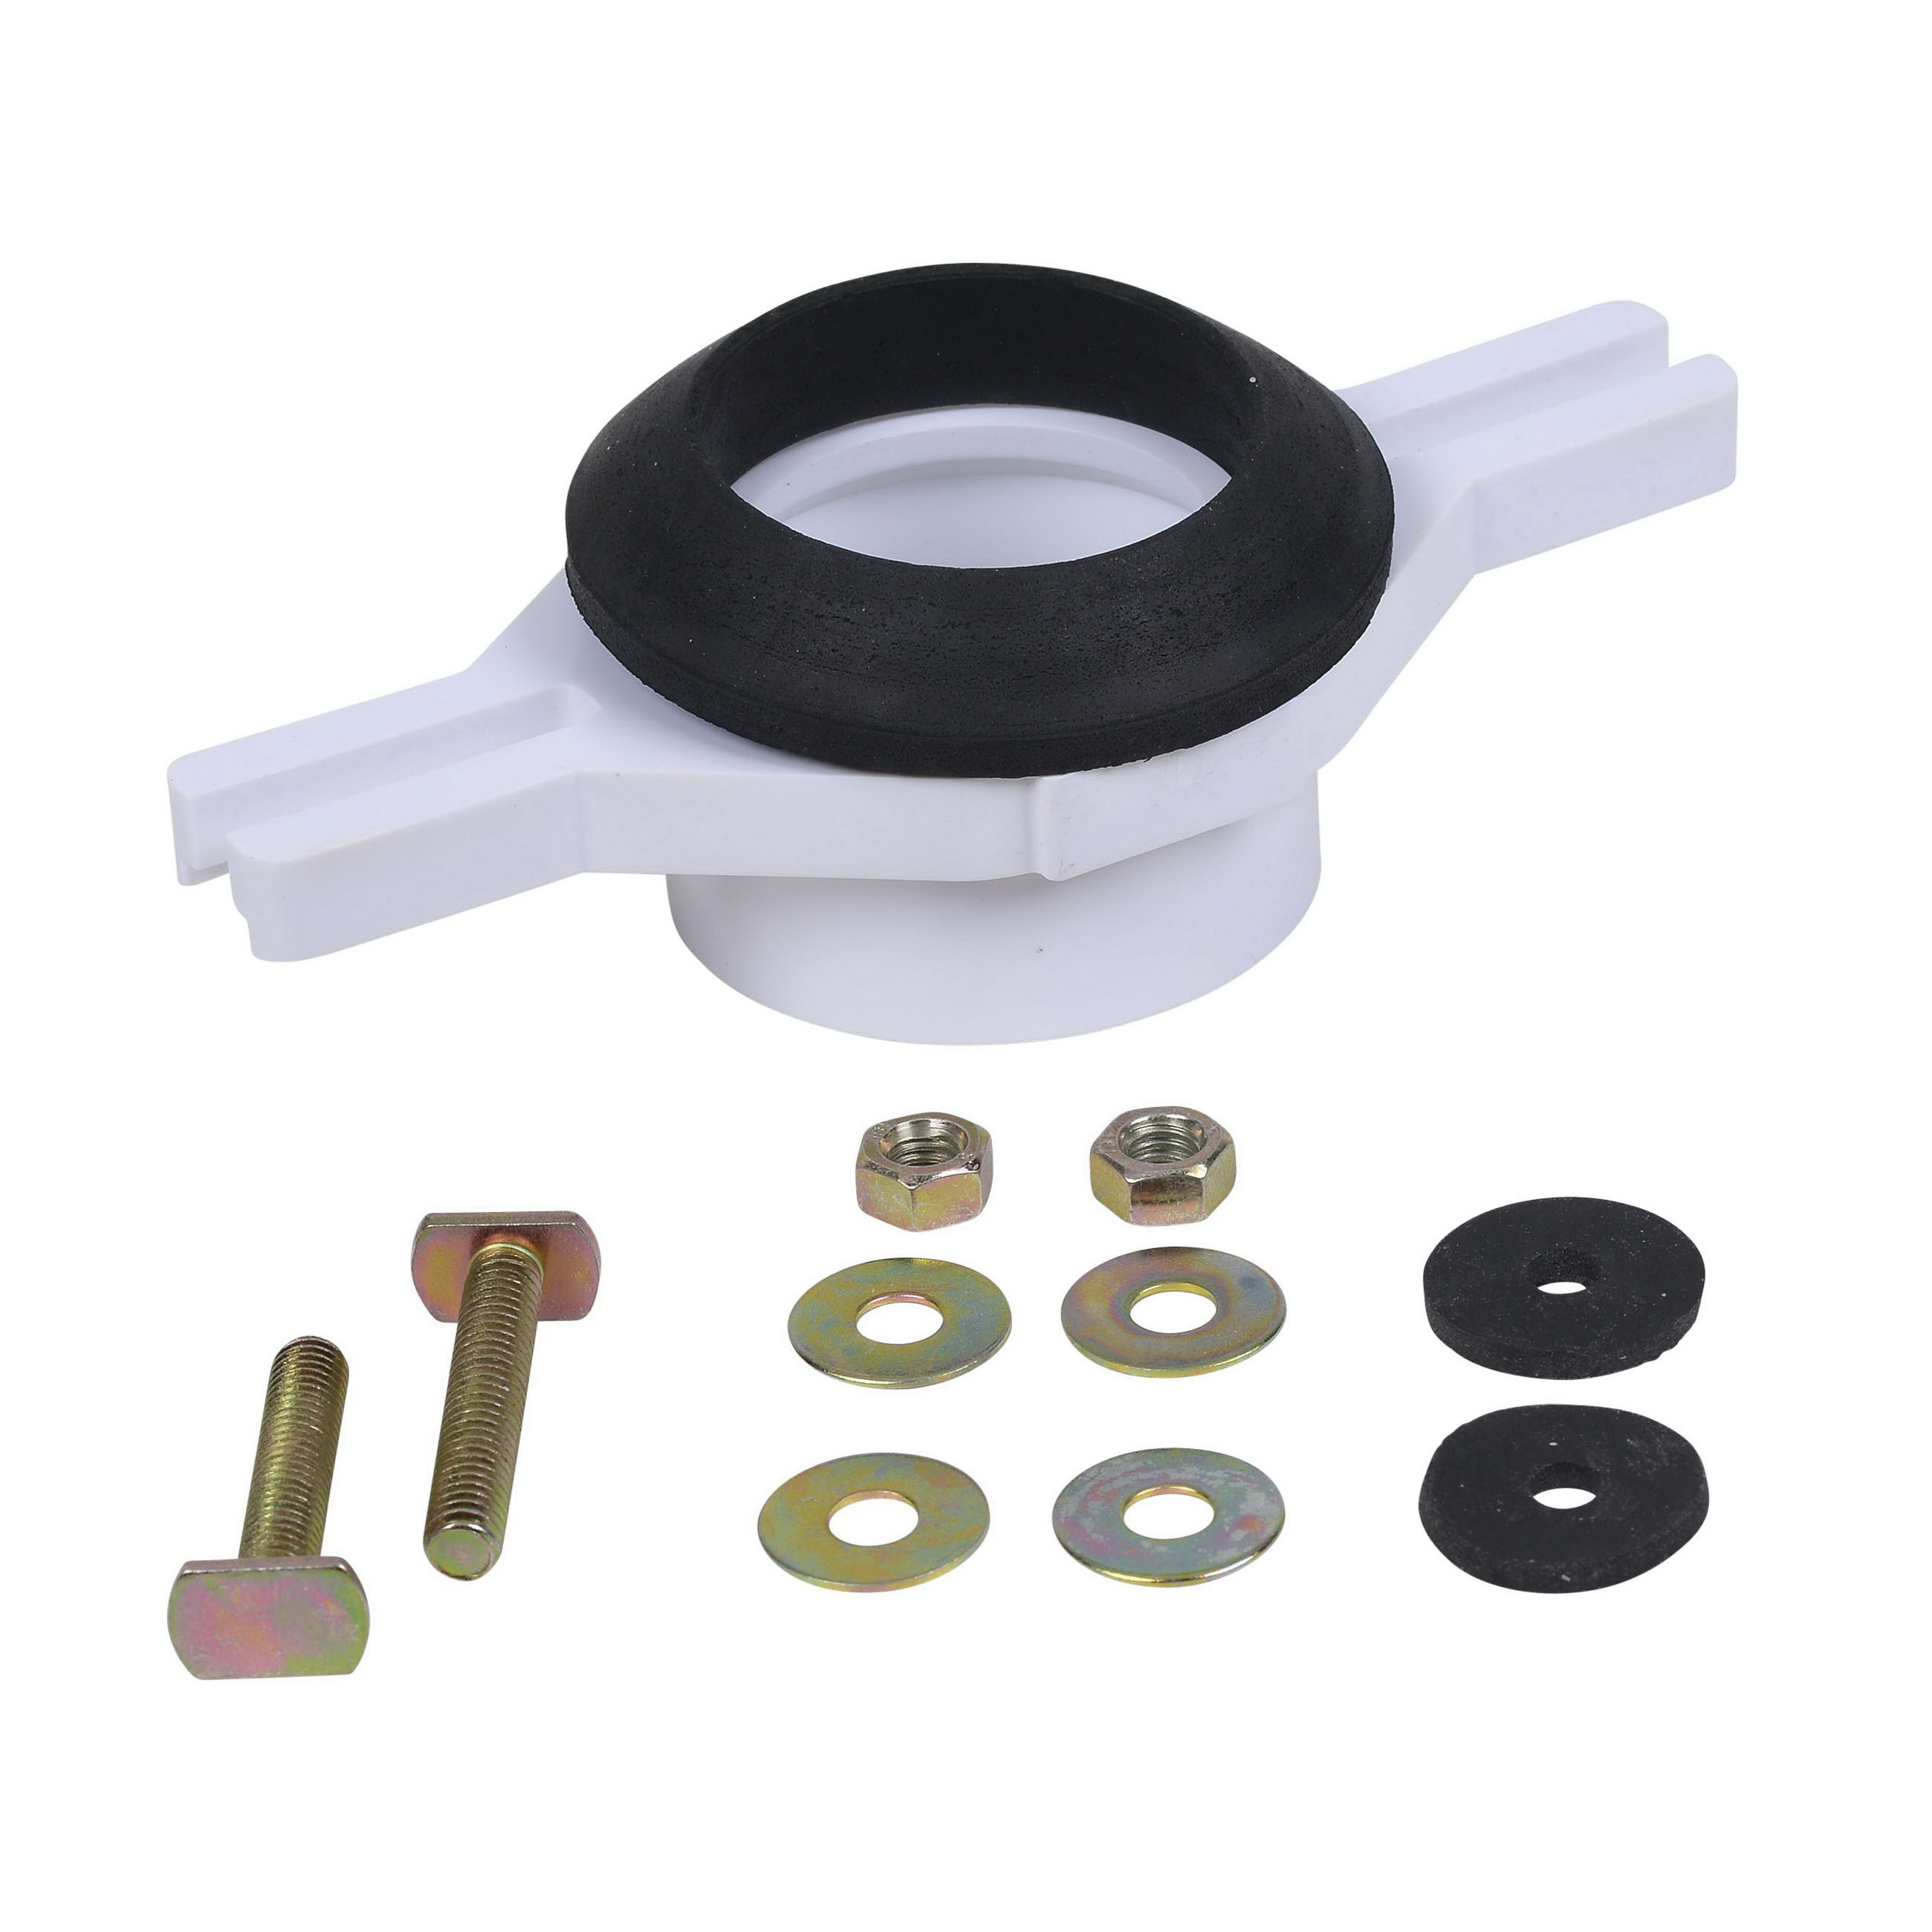 Oatey® 43541 White PVC Horizontal Adjustable Urinal Flange Kit for 2 in SCH 40 DWV Pipe